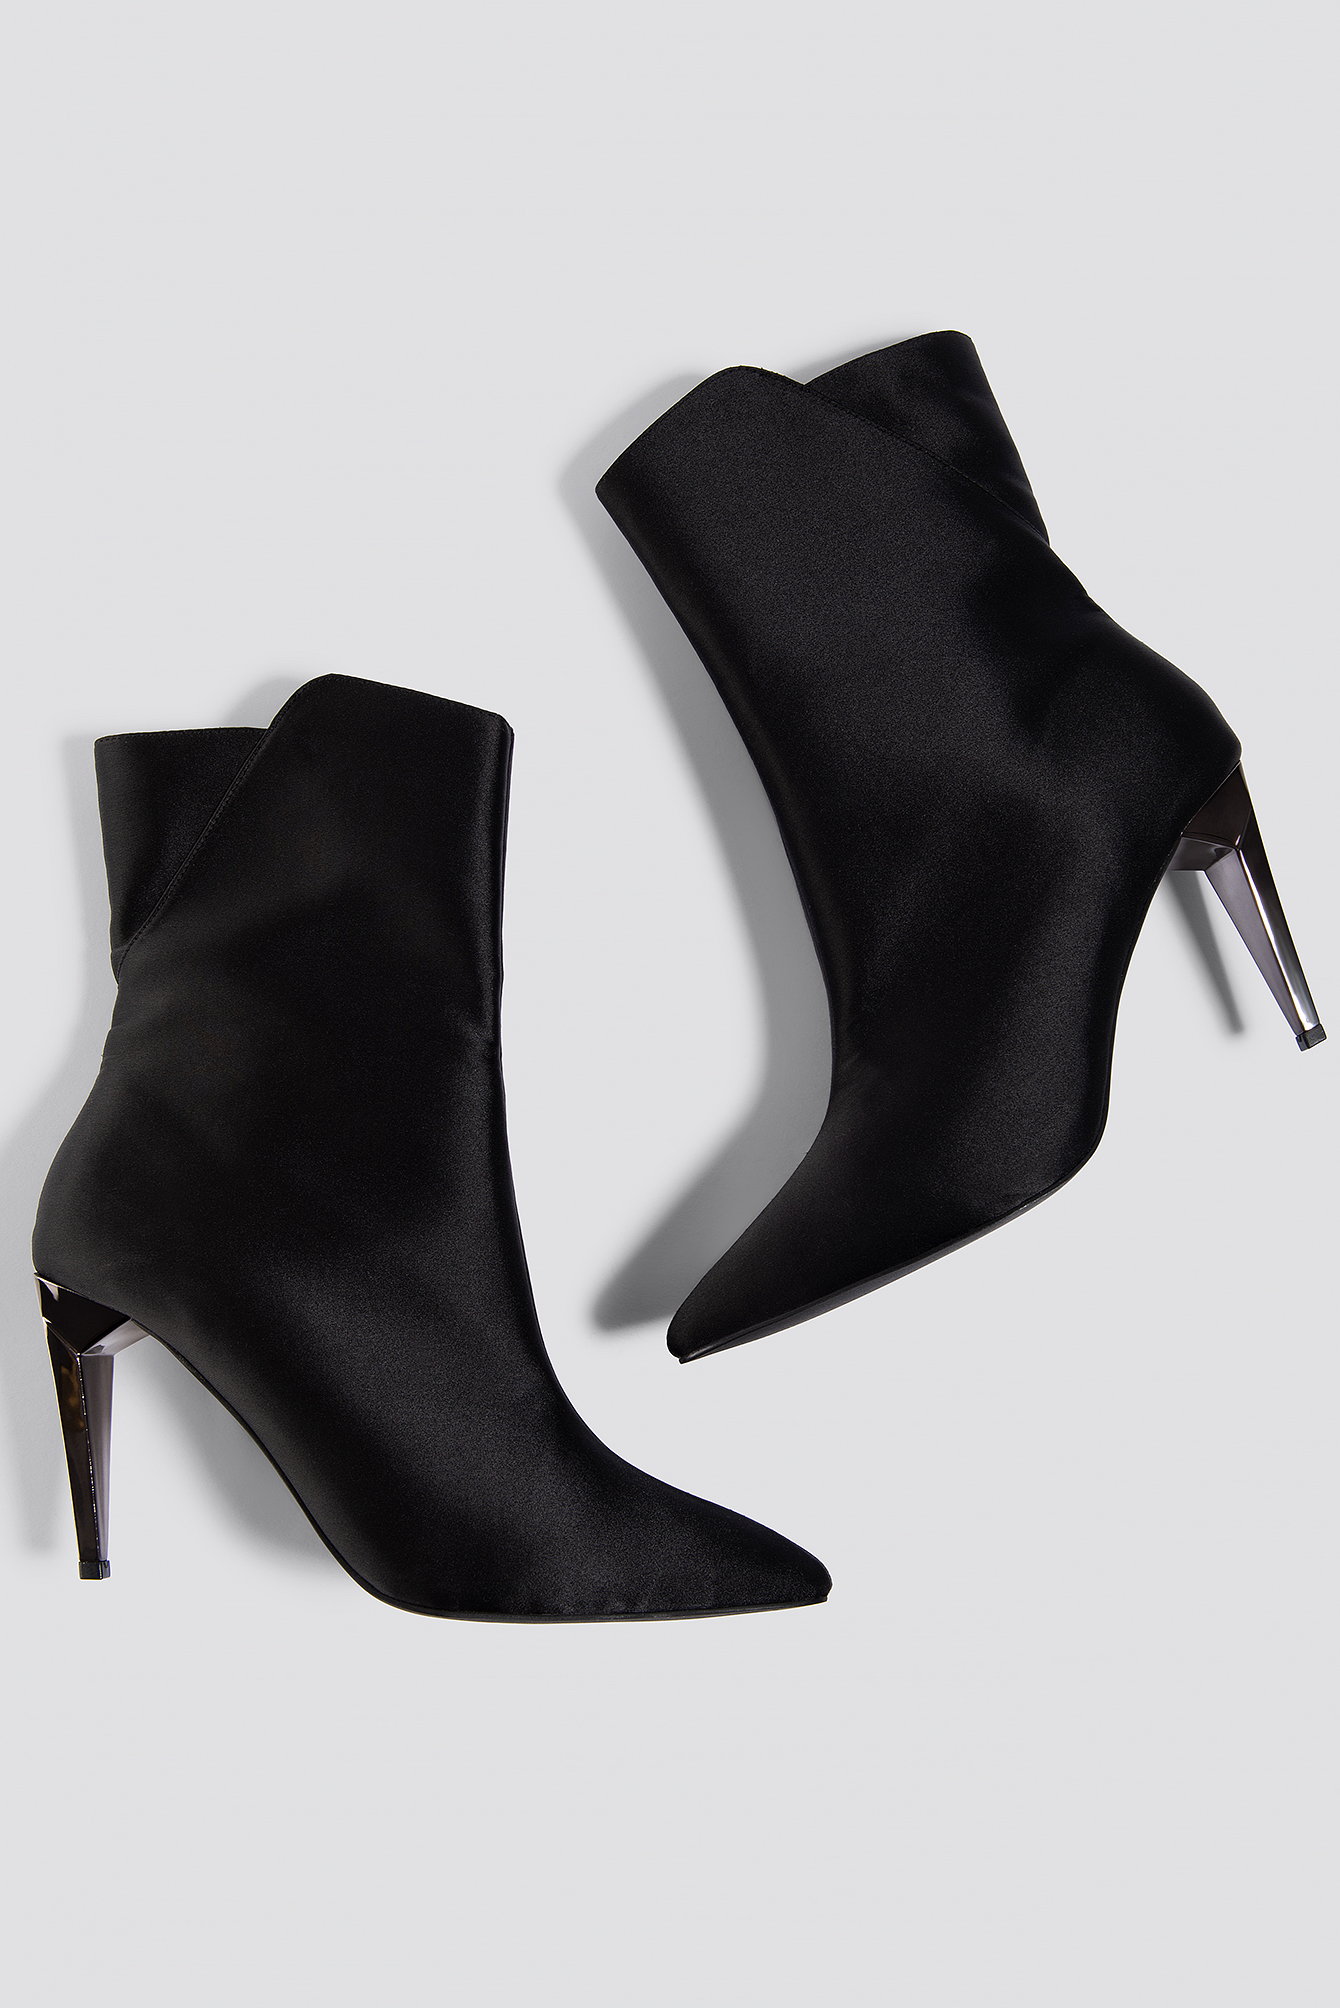 na-kd shoes -  Metallic Heel Satin Boots - Black